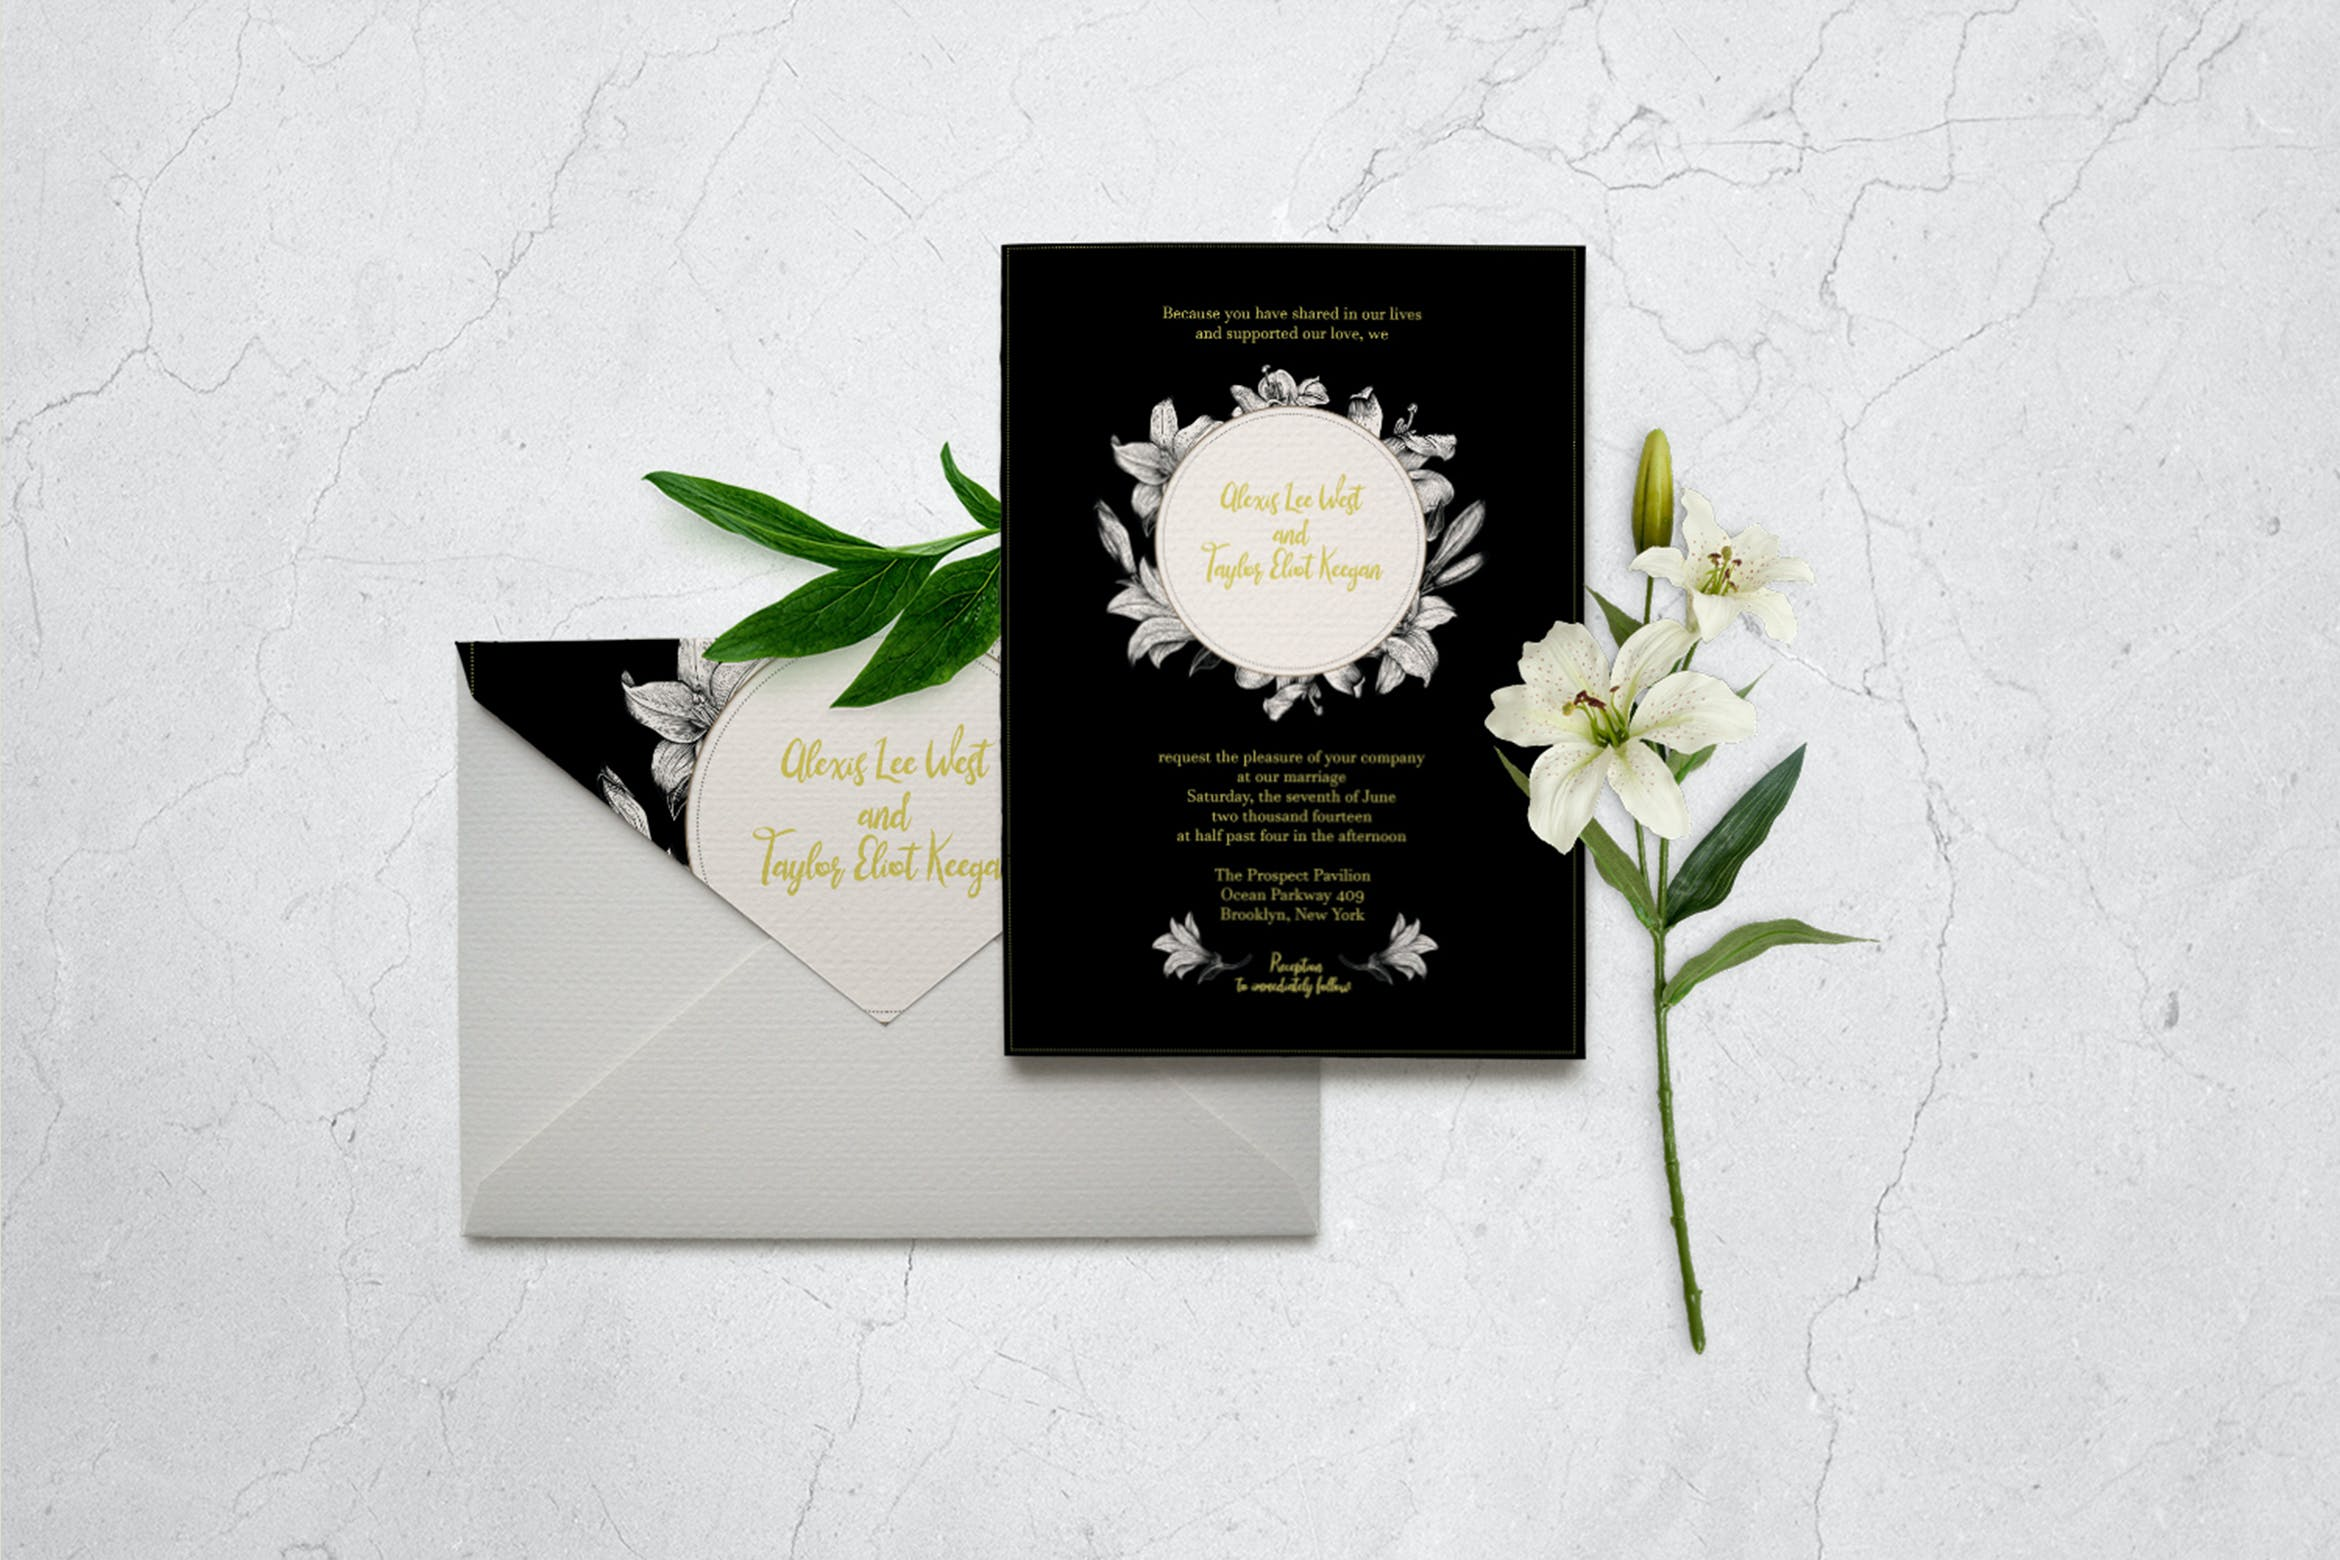 Classic Wedding Invitation Card Template by Squirrel92 on Envato Elements